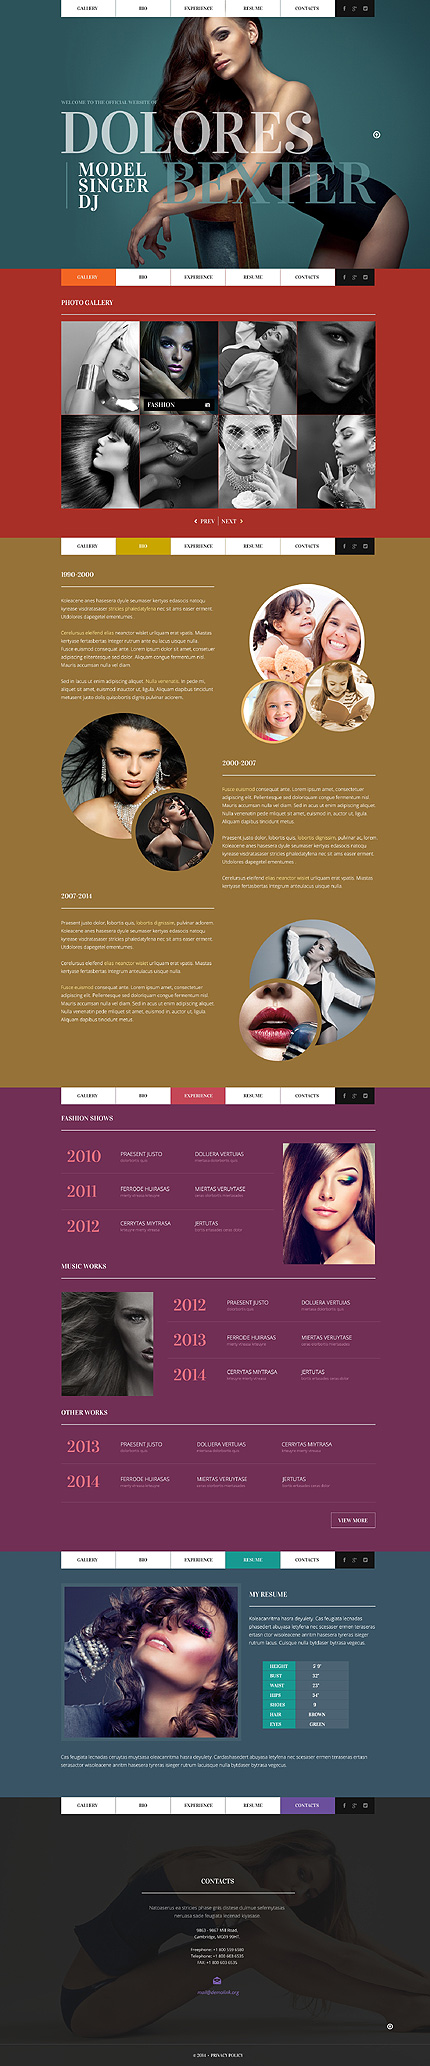 Personal Pages Most Popular website inspirations at your coffee break? Browse for more JavaScript Based #templates! // Regular price: $67 // Sources available: .HTML,  .PSD #Personal Pages #Most Popular #JavaScript Based